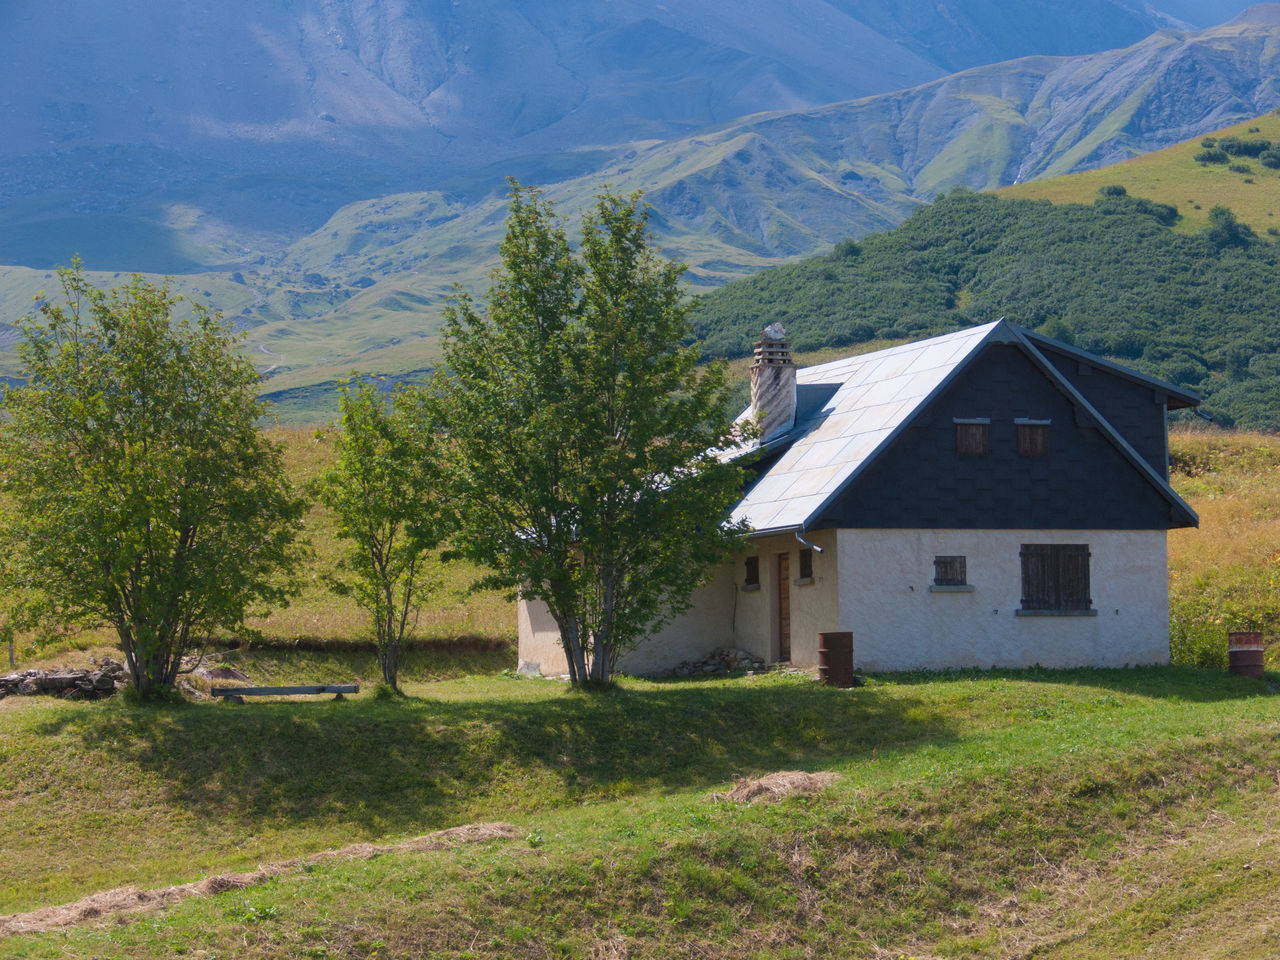 mountain, house, built structure, architecture, building exterior, scenics, no people, day, tree, landscape, outdoors, grass, nature, beauty in nature, sky